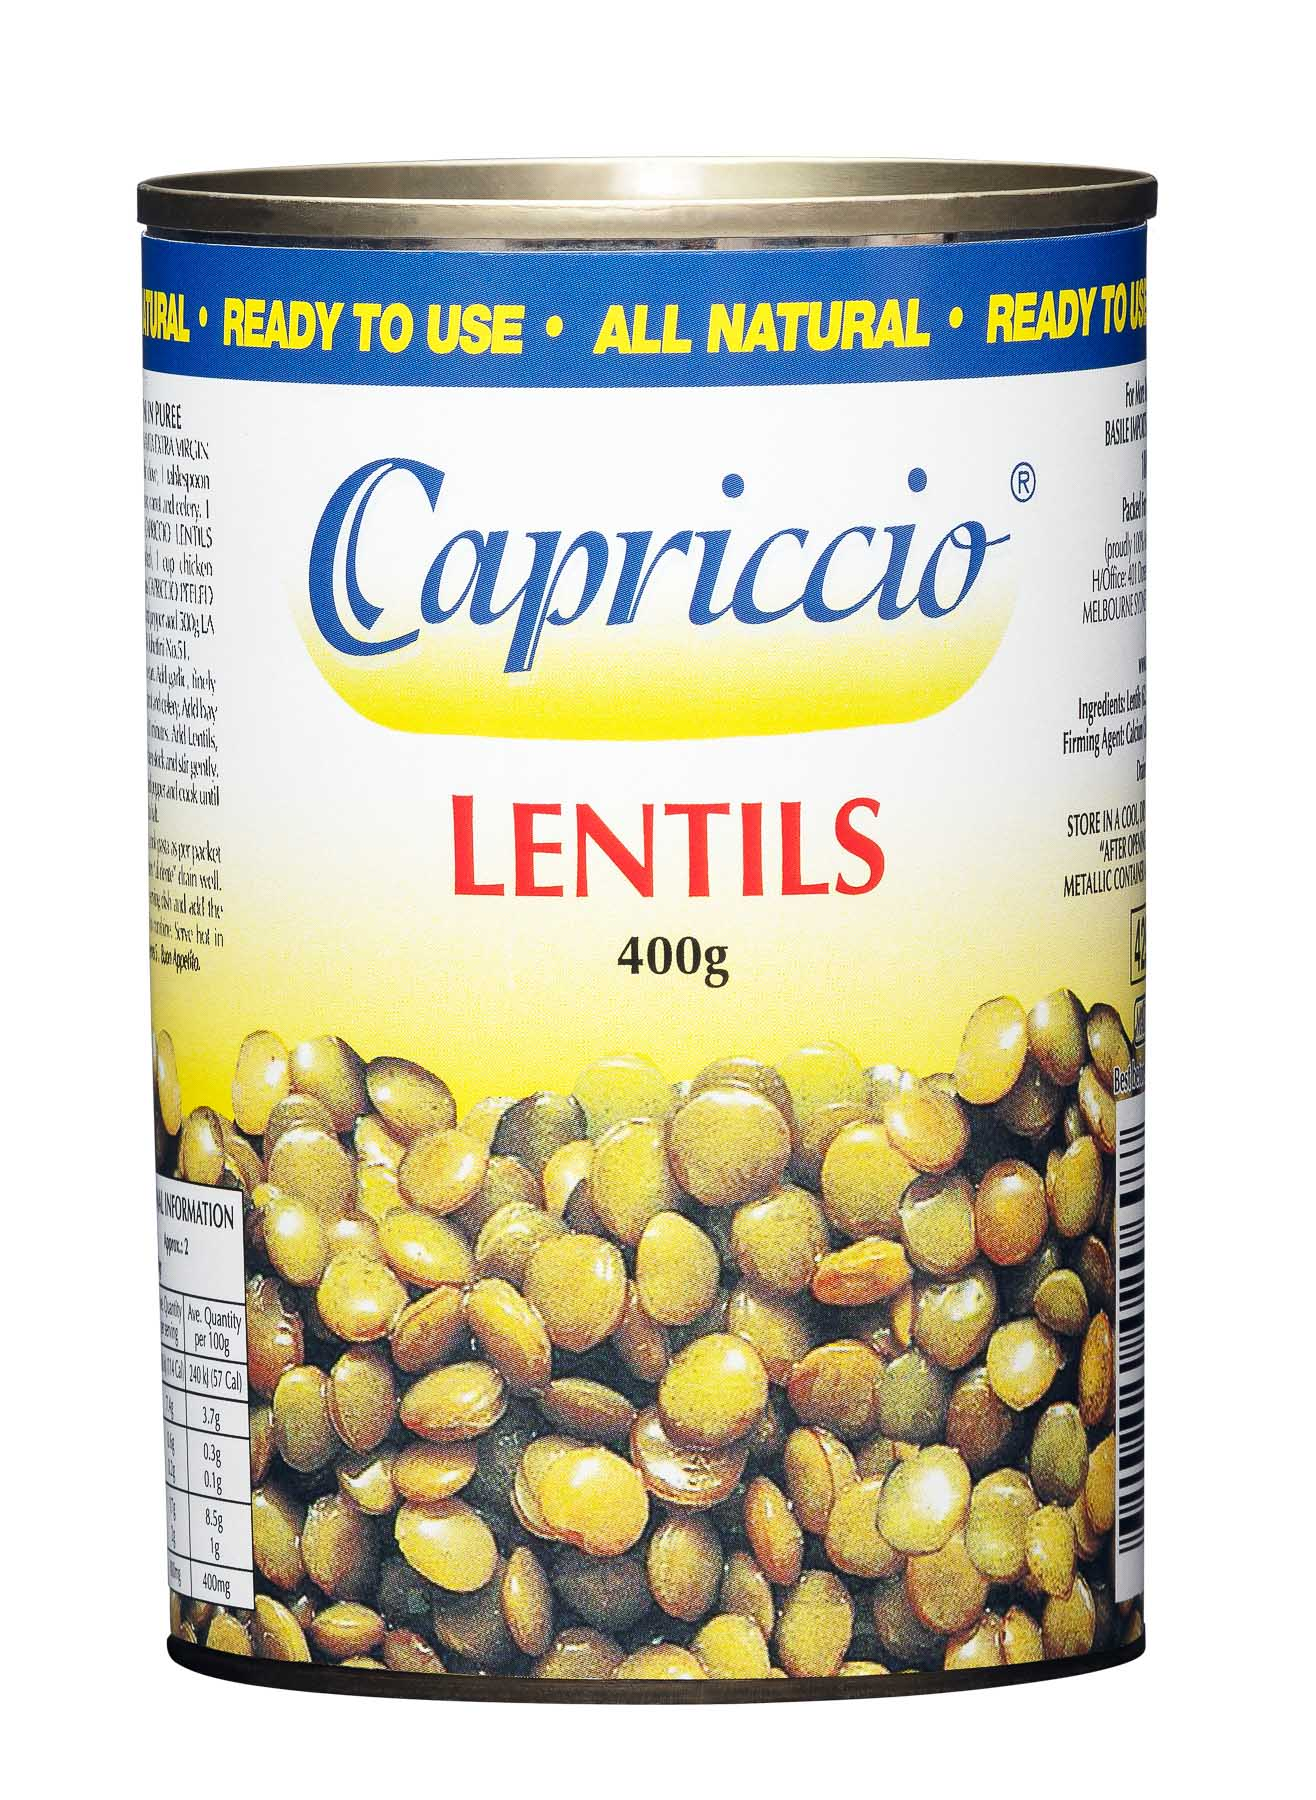 Lentils 400g - Product Photography sample